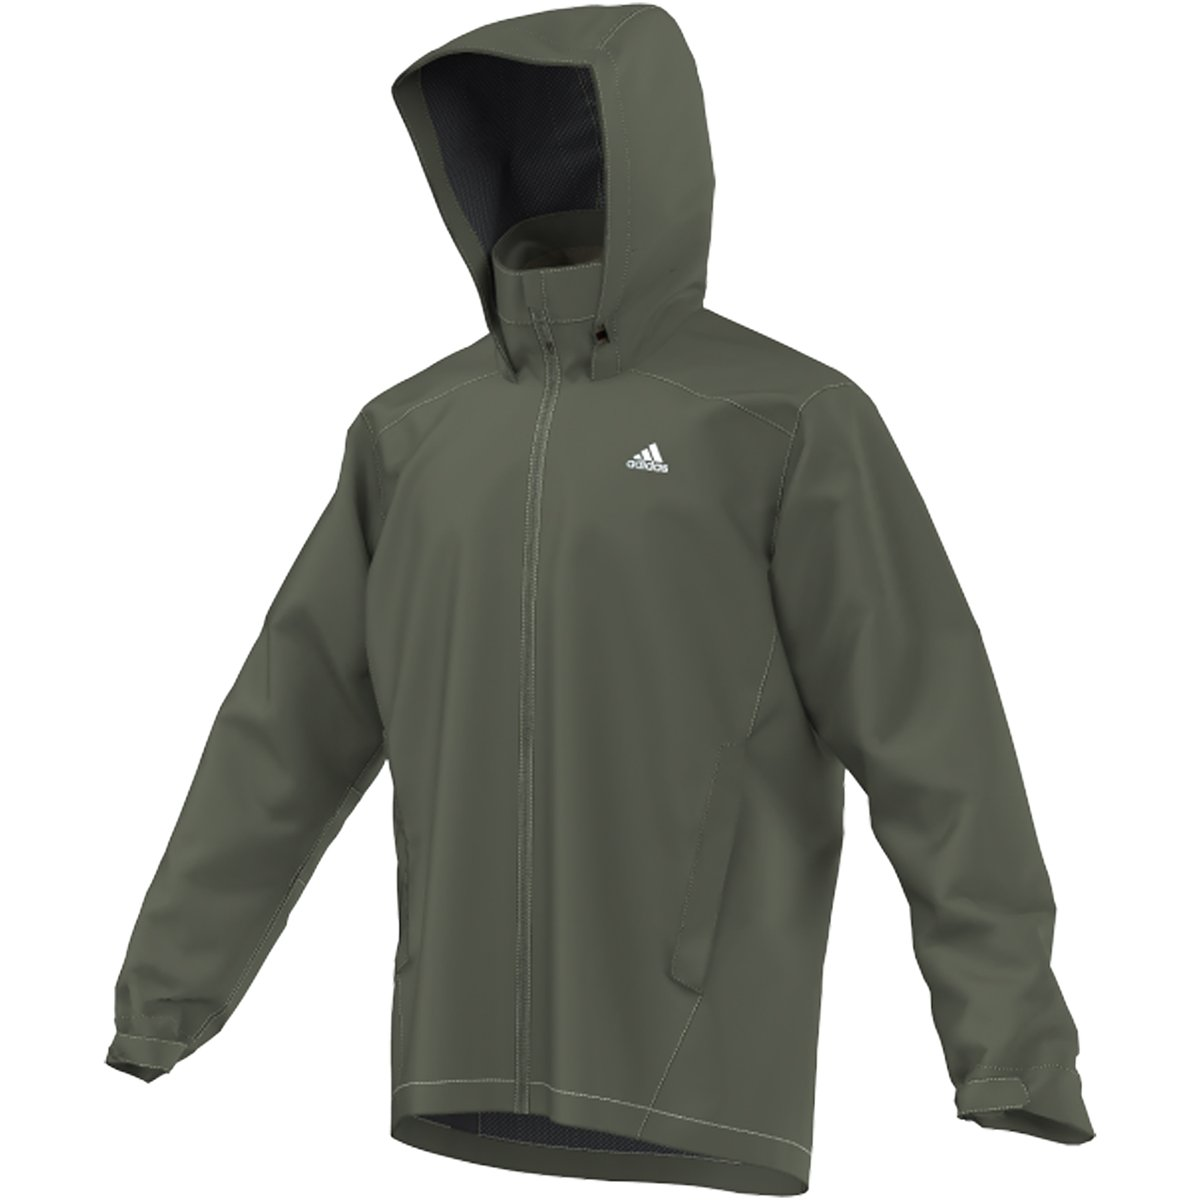 4b73a443a Amazon.com: adidas Outdoor Men's 2 Layer Wandertag Gore-Tex Jacket: Clothing